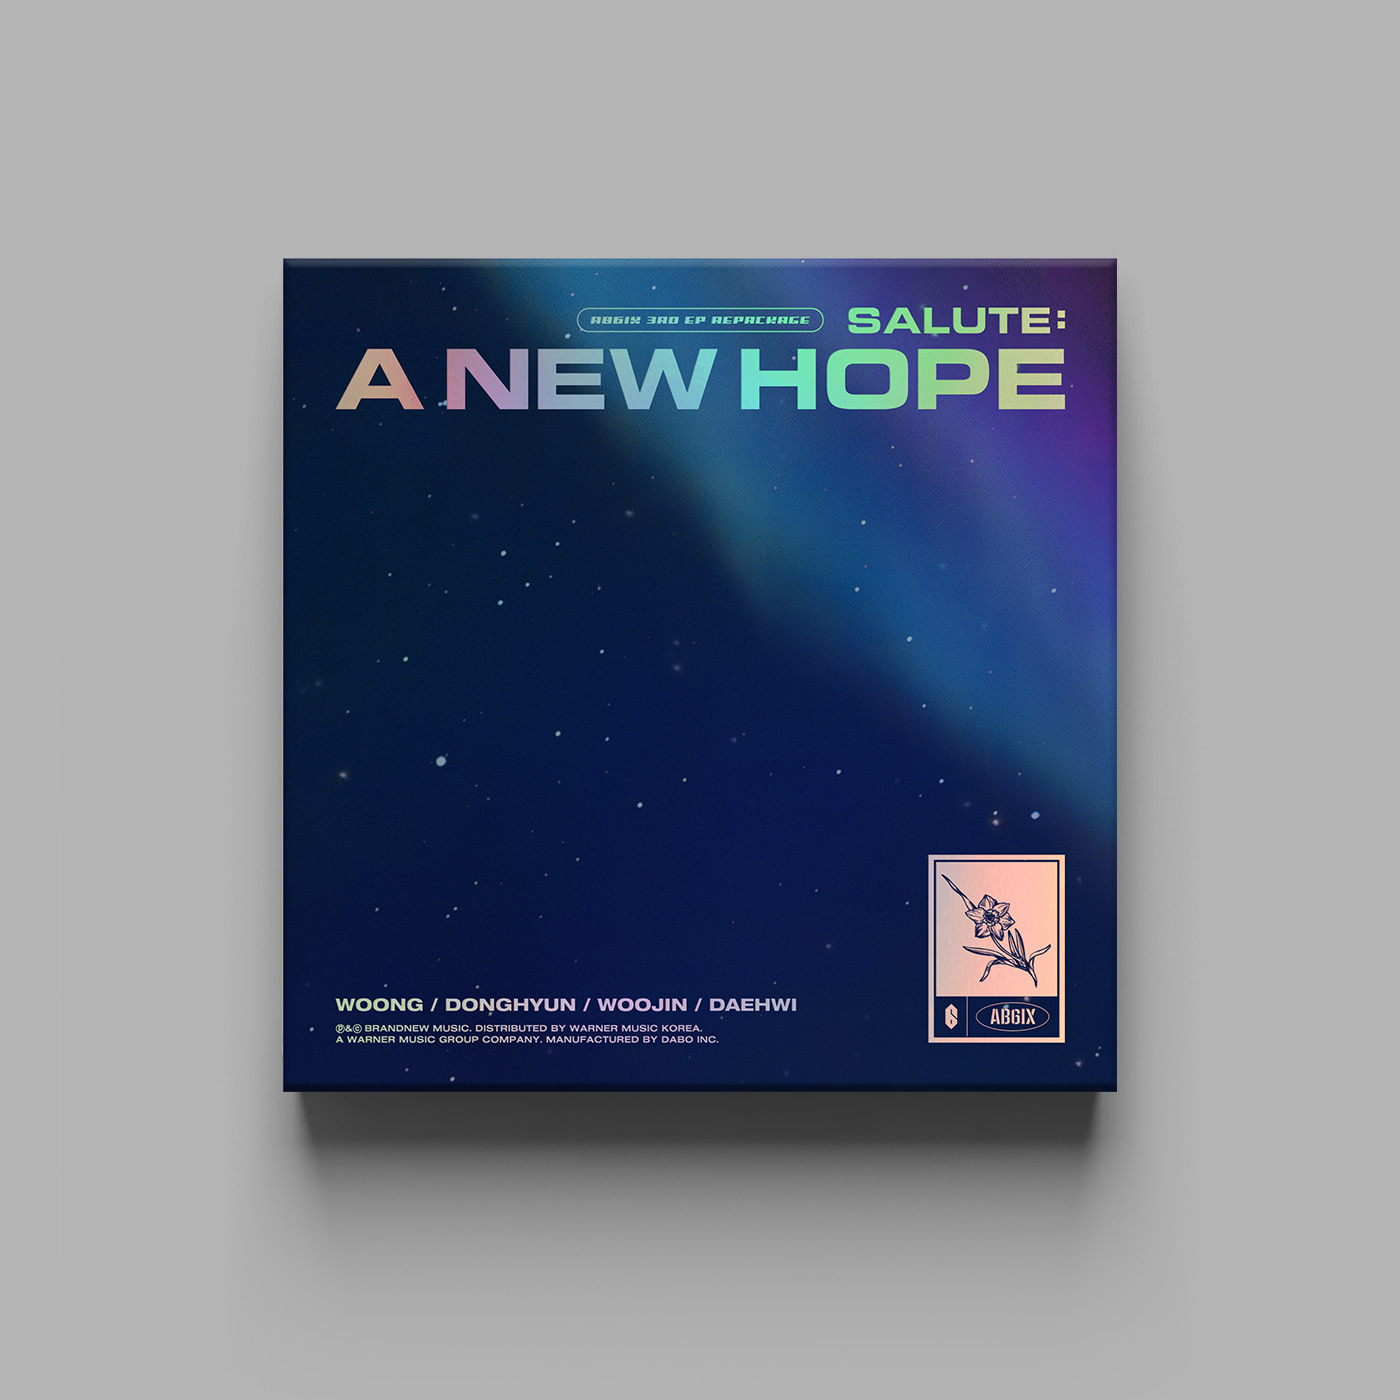 AB6IX - 3RD EP REPACKAGE [SALUTE : A NEW HOPE] (NEW Ver.)케이팝스토어(kpop store)